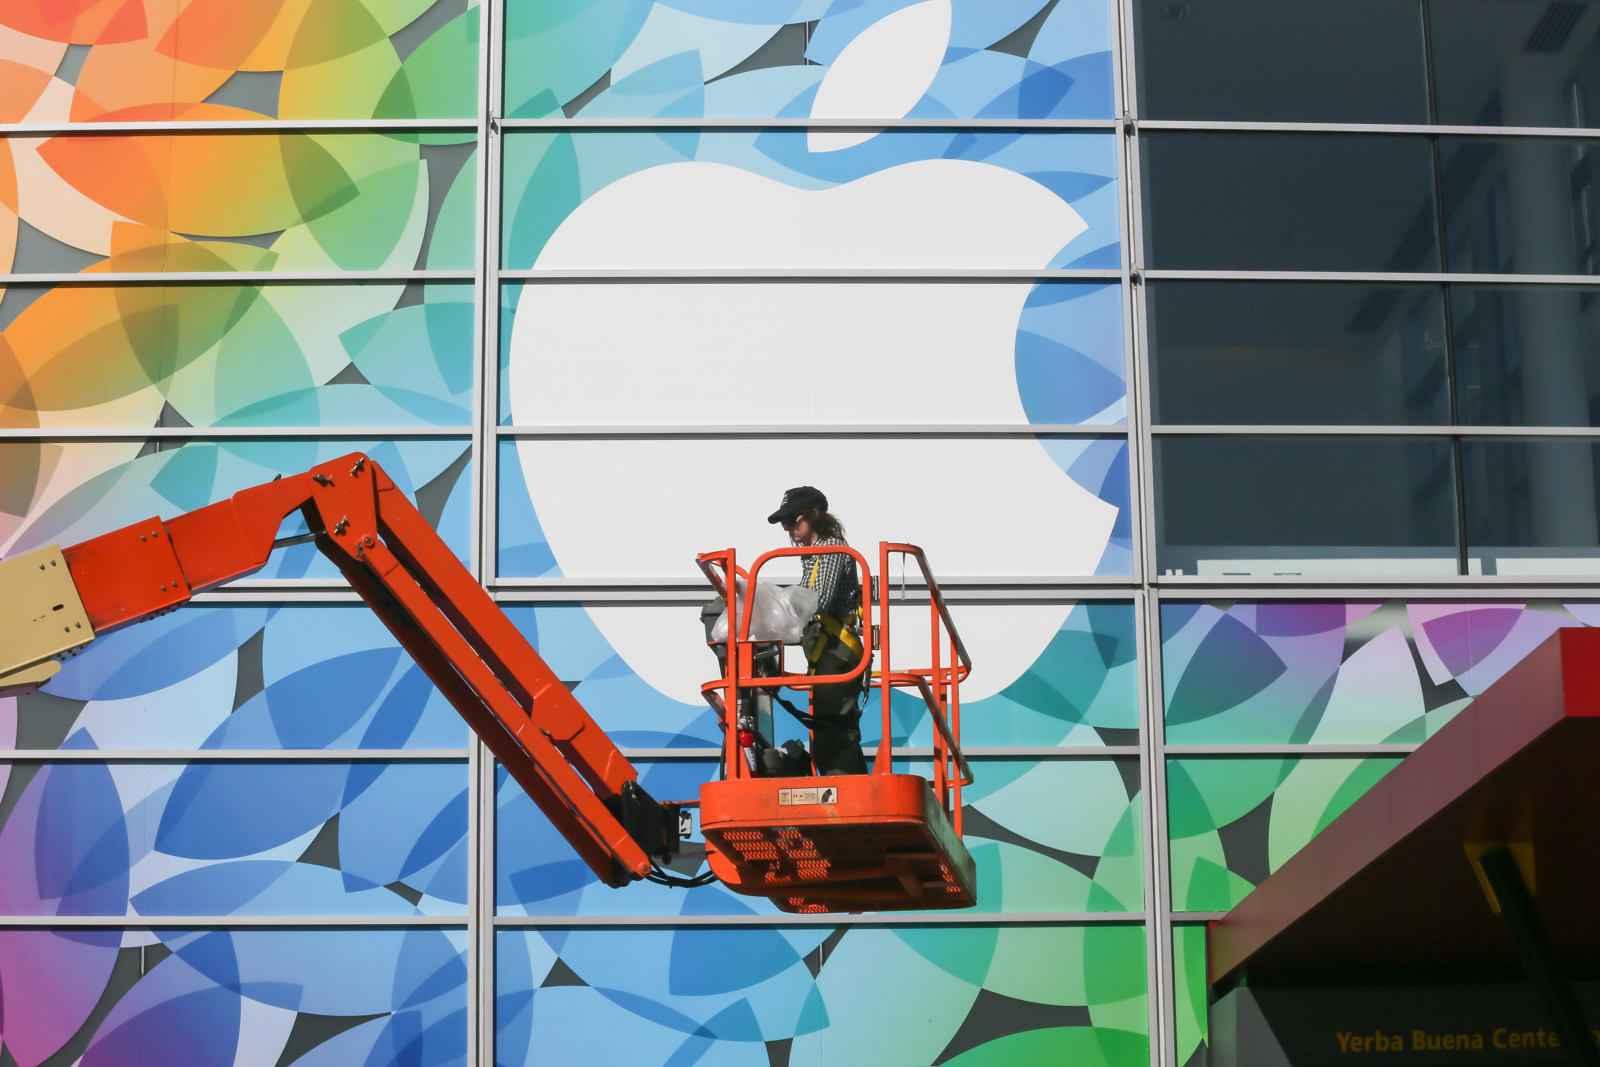 Workers decorating Yerba Buena Center for the Arts Theater in San Francisco for next week's Apple event.